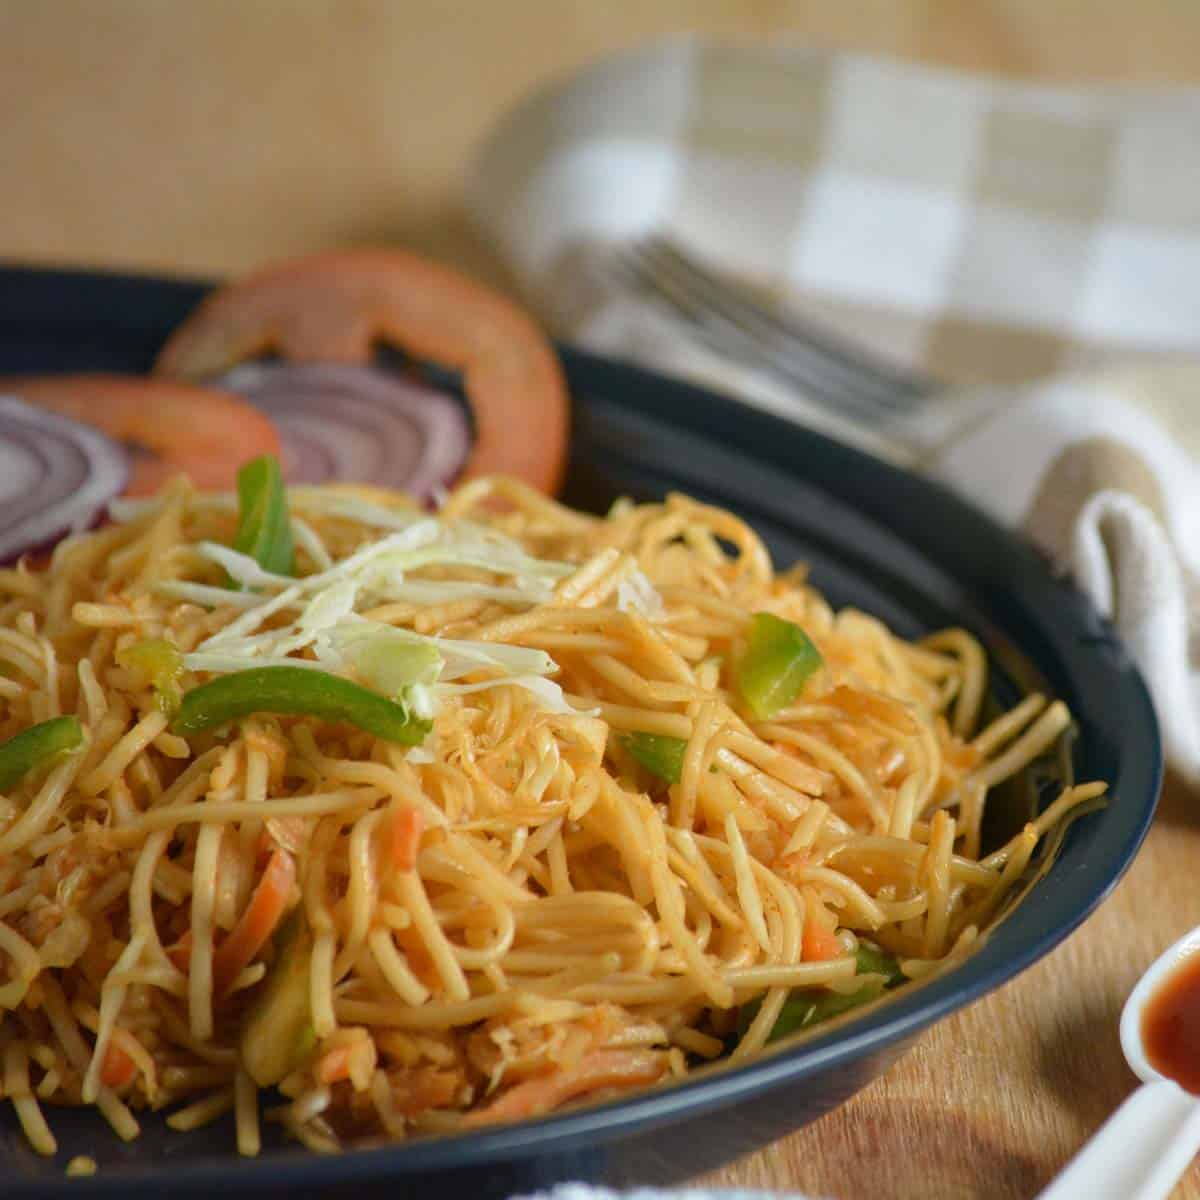 learn how to make Spicy Szechuan Noodles